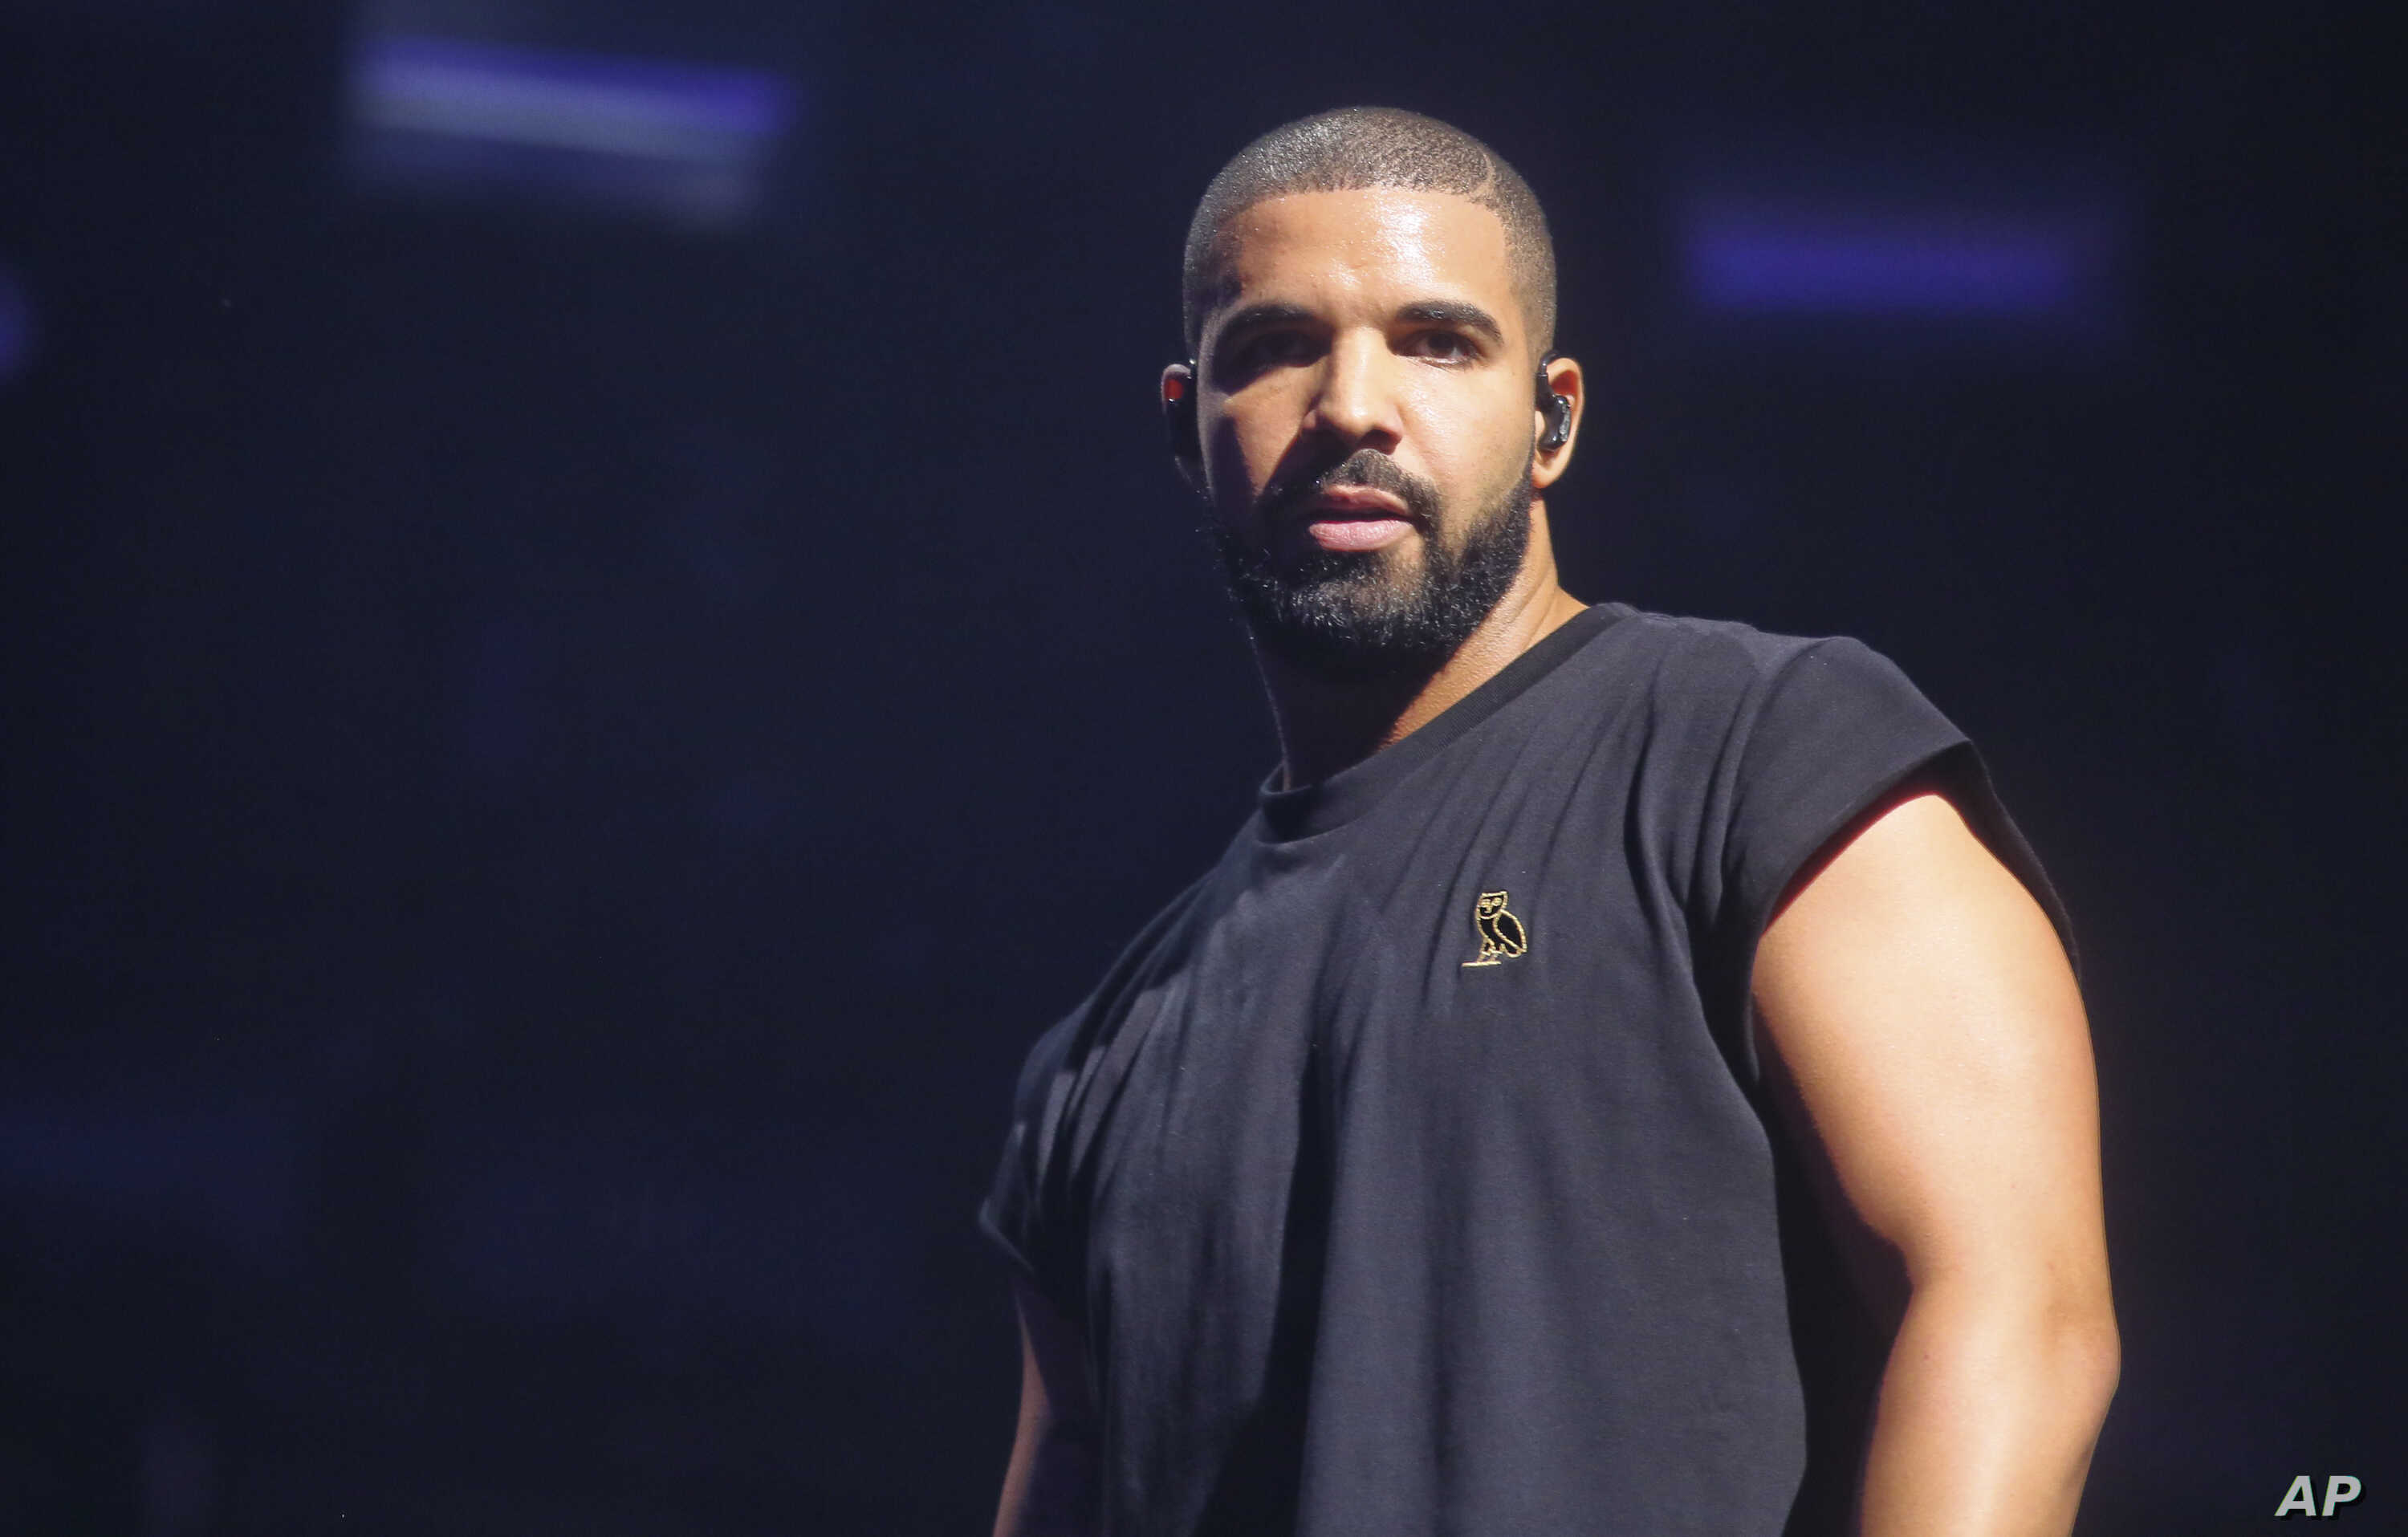 Drake performs at the Austin City Limits Music Festival in Zilker Park on Oct. 3, 2015, in Austin, Texas.